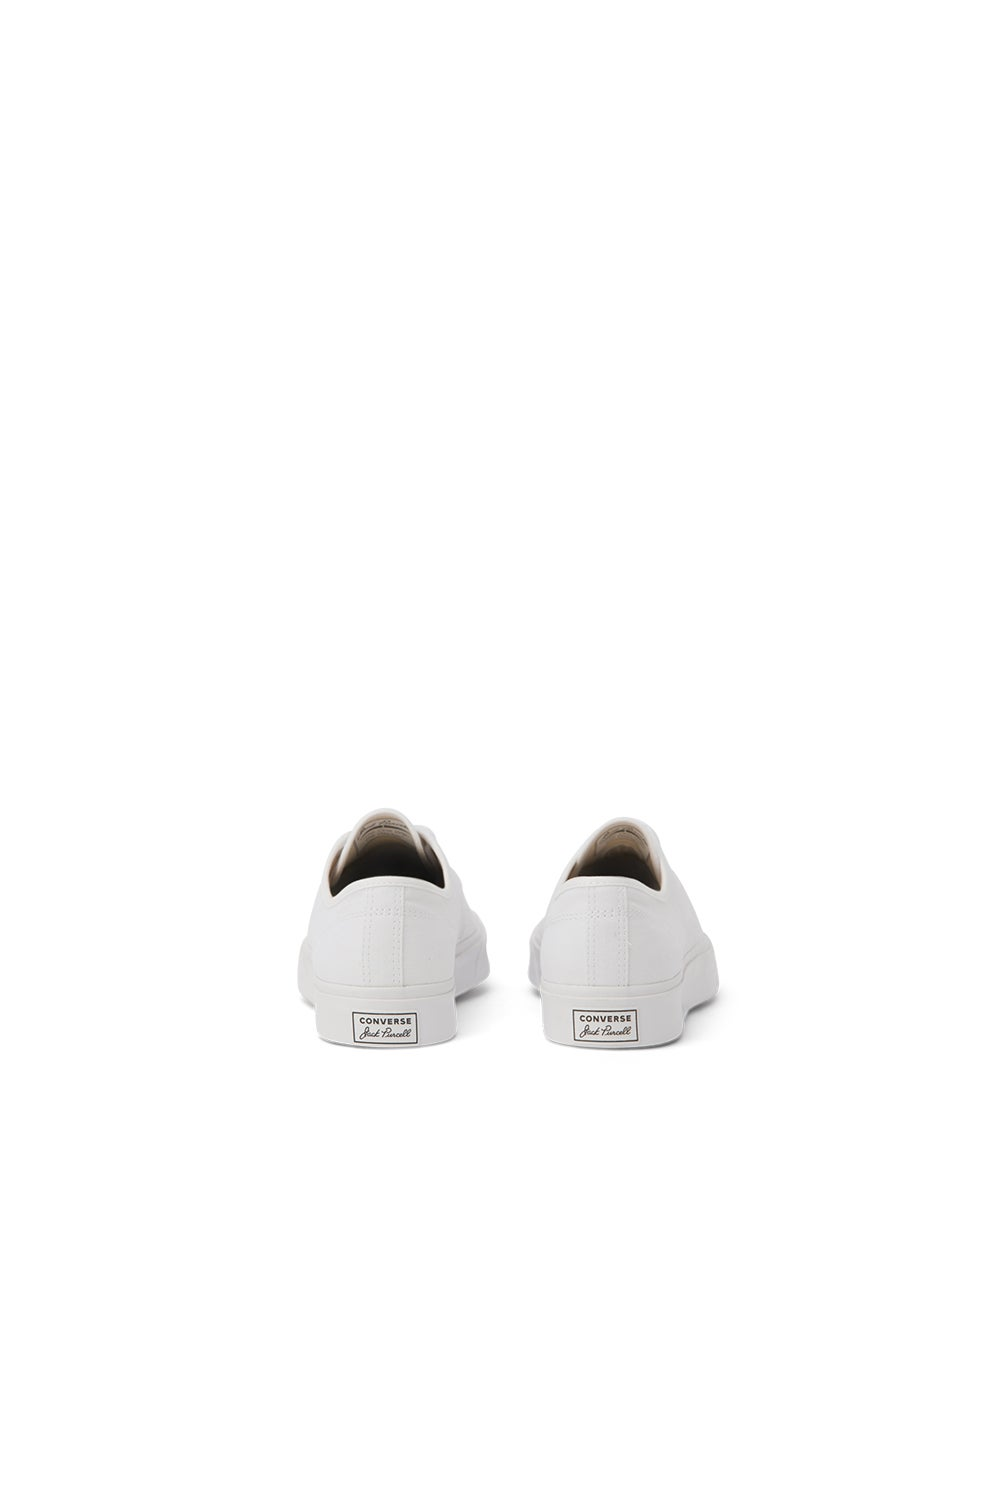 Converse Jack Purcell First in Class White/Black